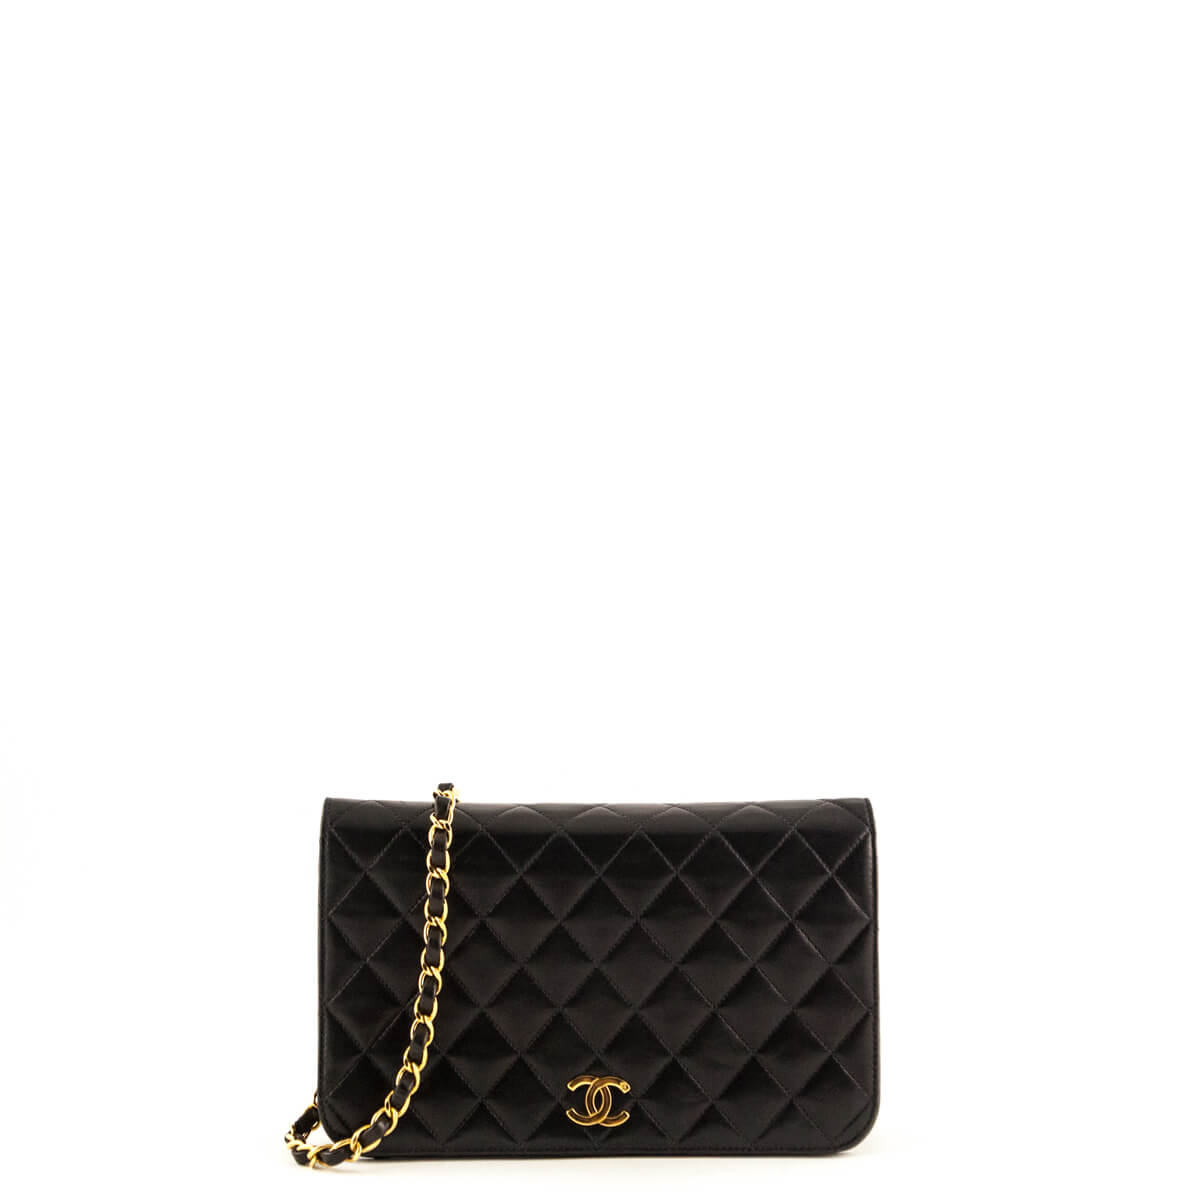 e21989a0442f Chanel Black Lambskin Vintage Small Single Flap GHW - LOVE that BAG -  Preowned Authentic Designer ...